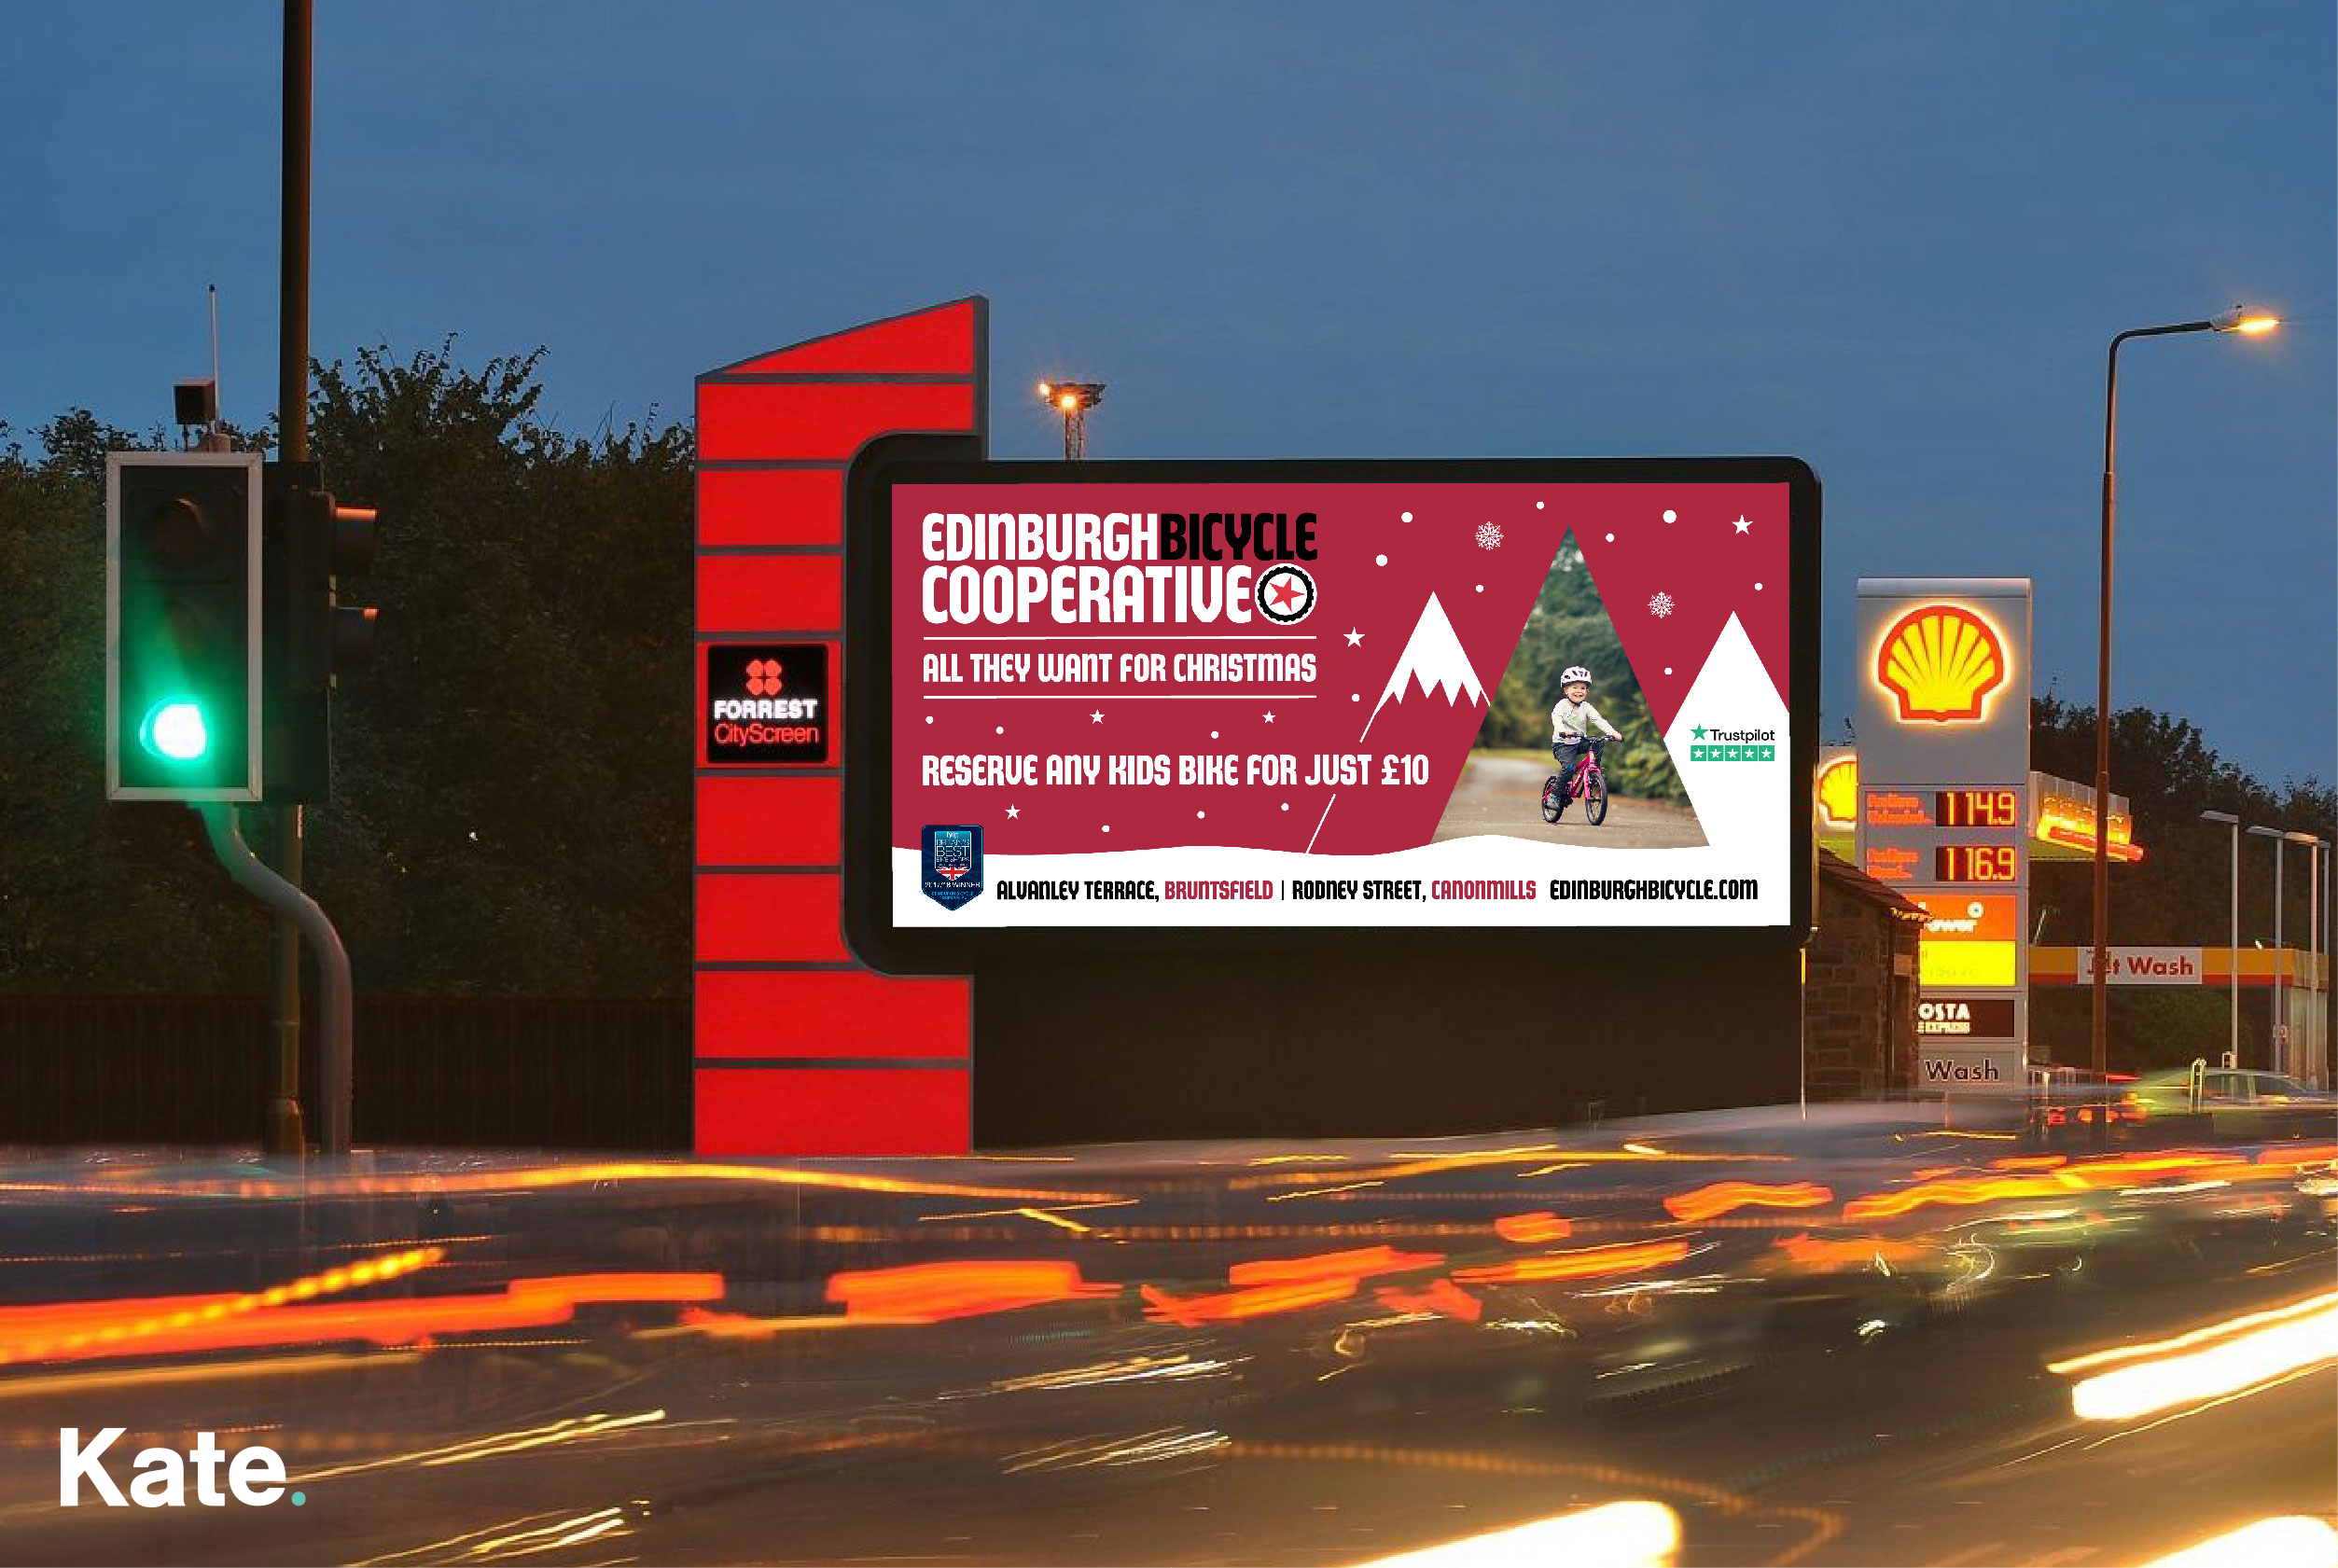 Edinburgh Bicycle Cooperative - Digital Billboard